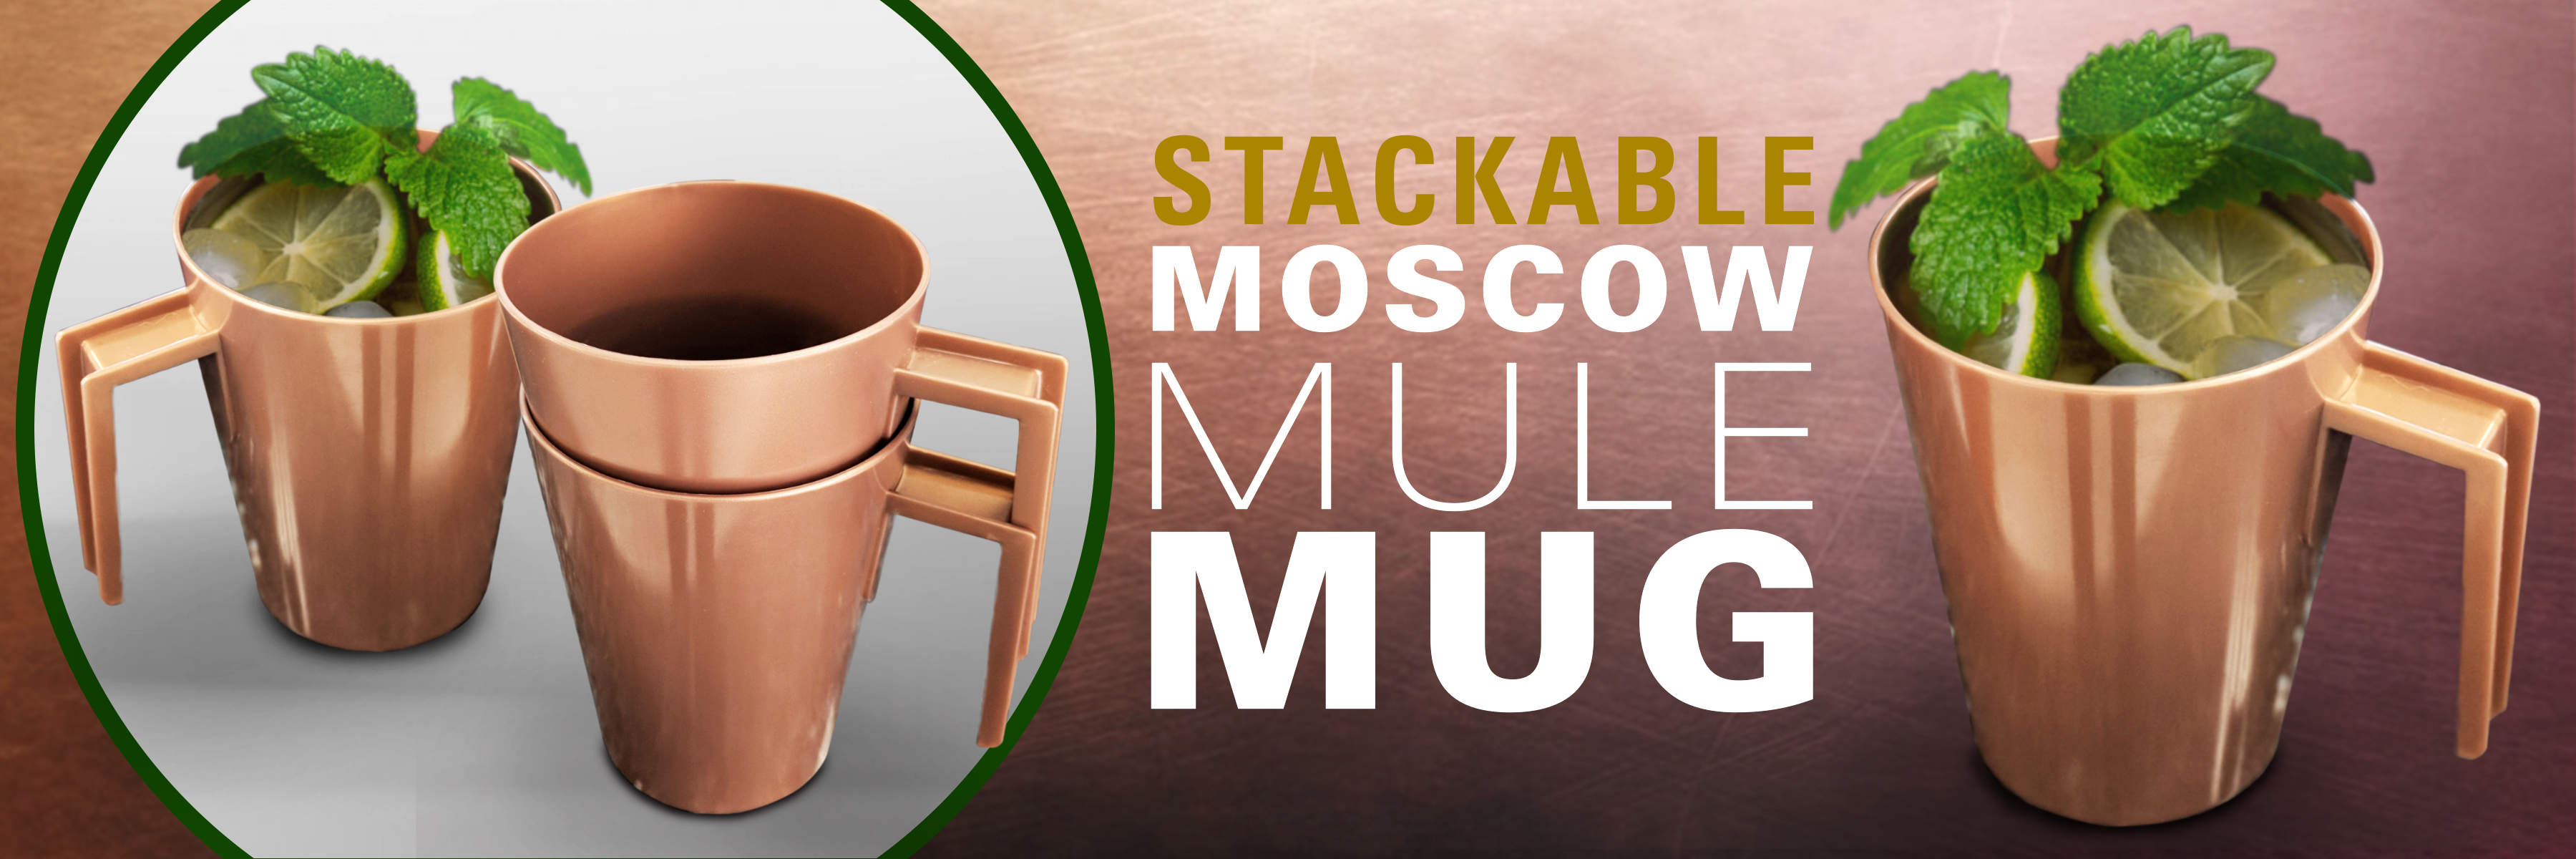 stackable moscow mule mug